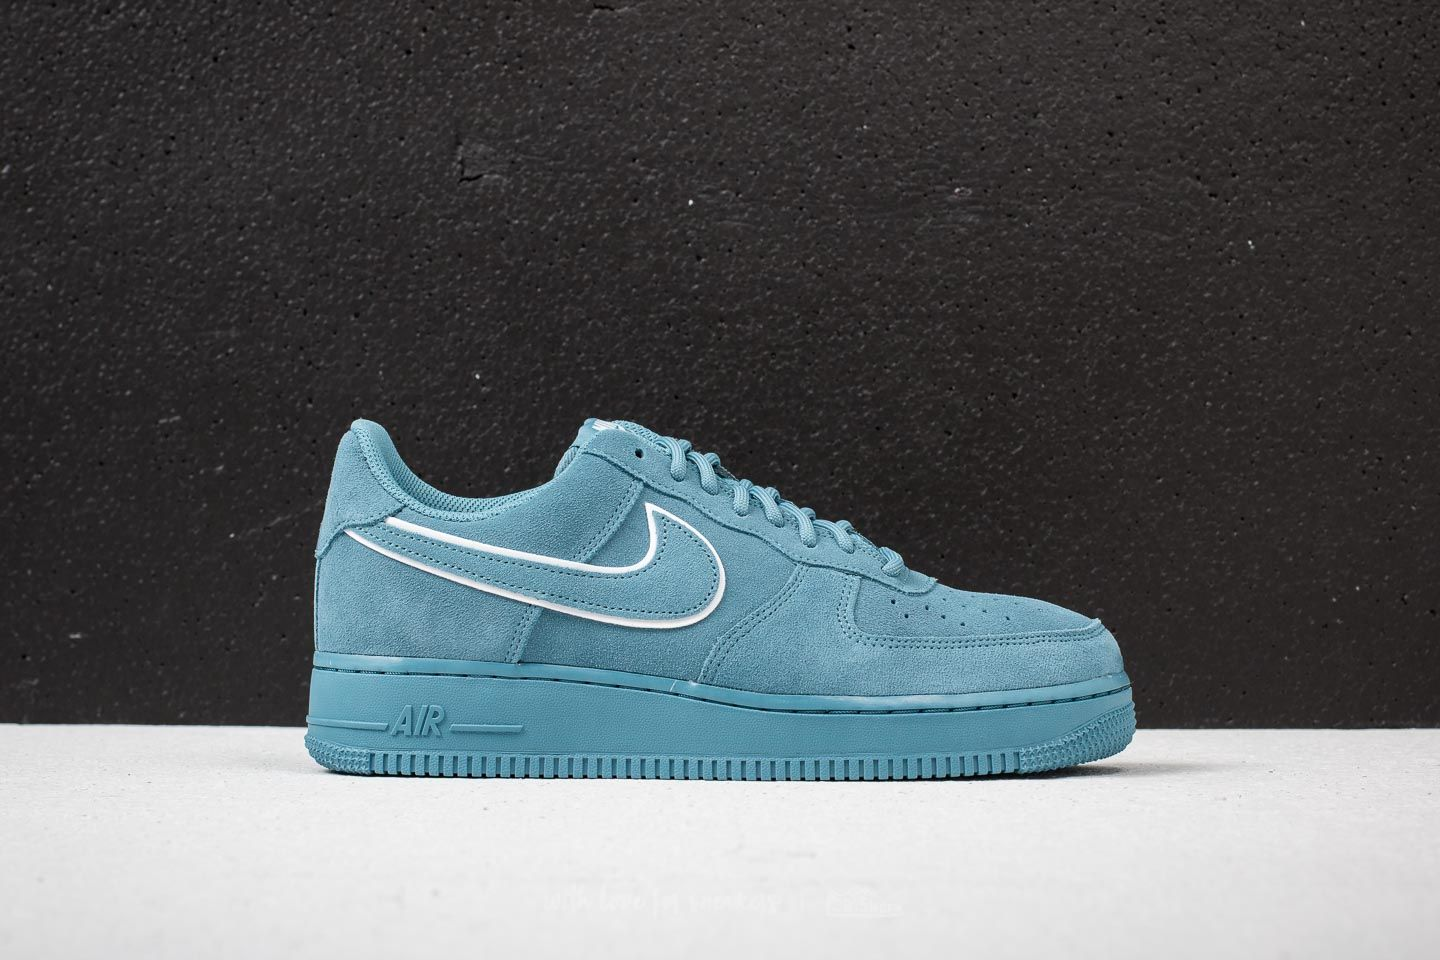 Sneaker basse Nike Donna | Air Force 1 07 LV8 Suede Turchese